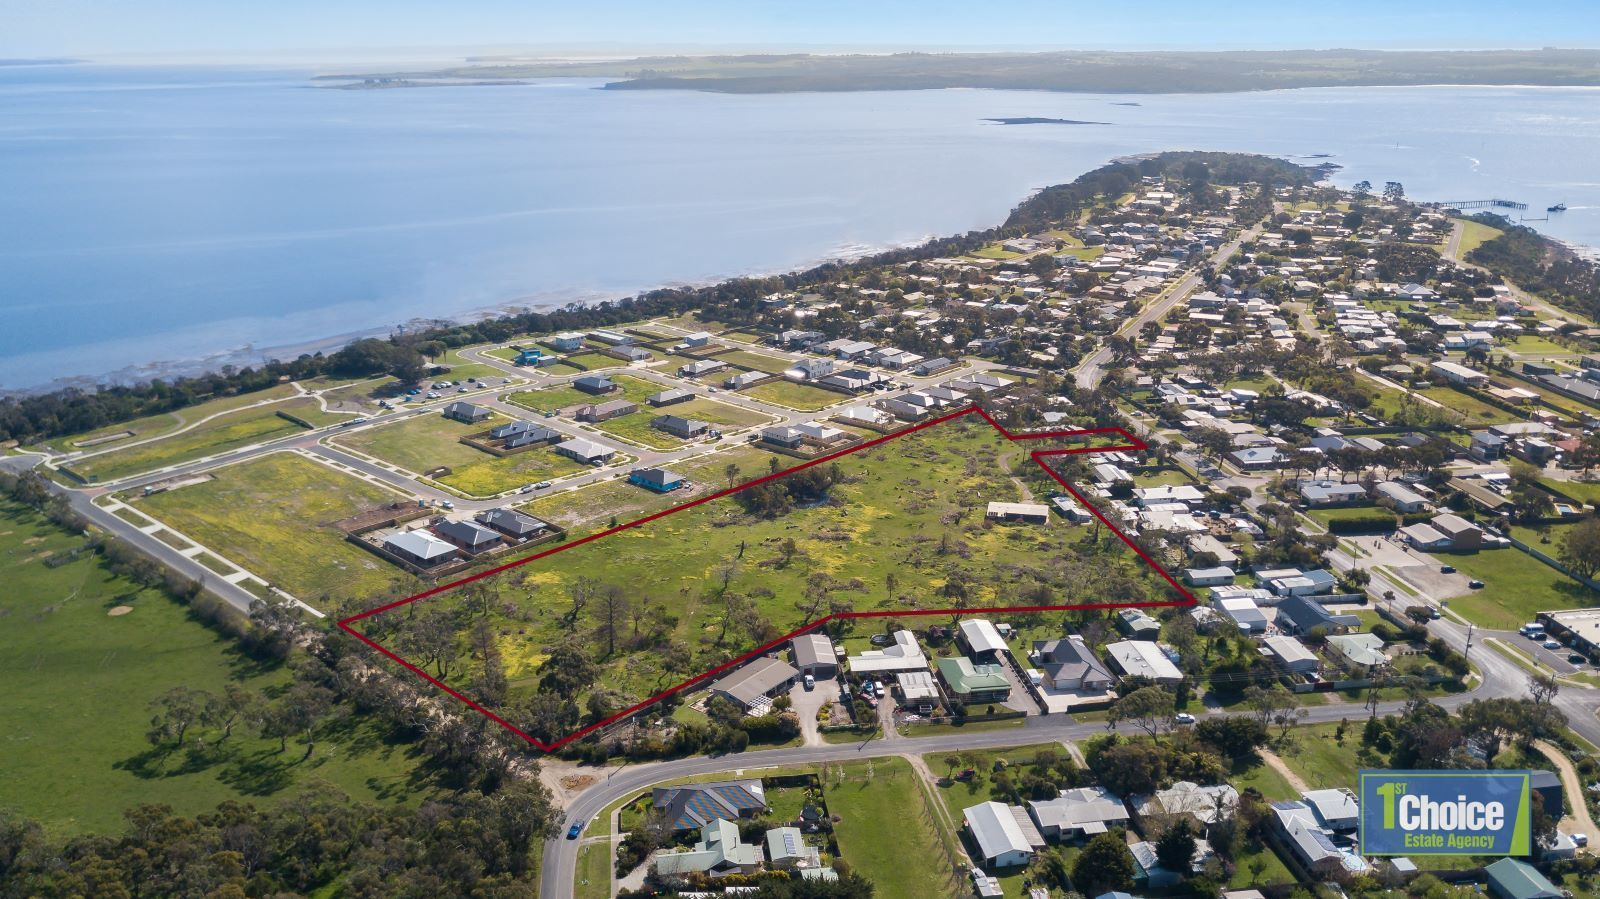 Lot 21, 61 Smythe Street, Corinella VIC 3984, Image 1